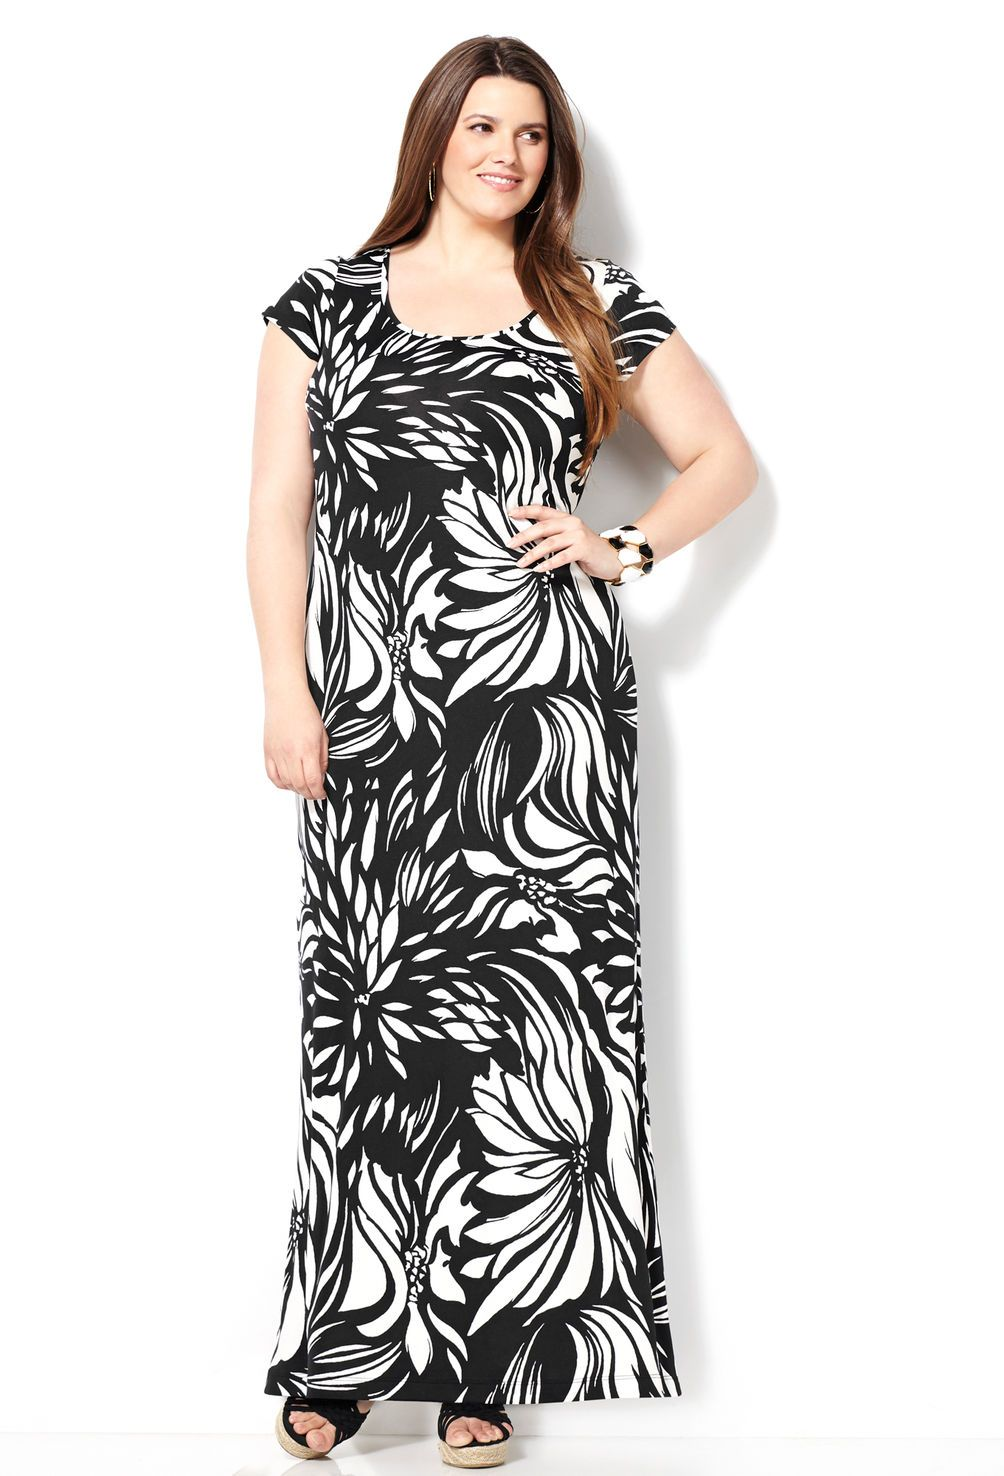 Black and white floral maxi dressplus size dressavenue fashion